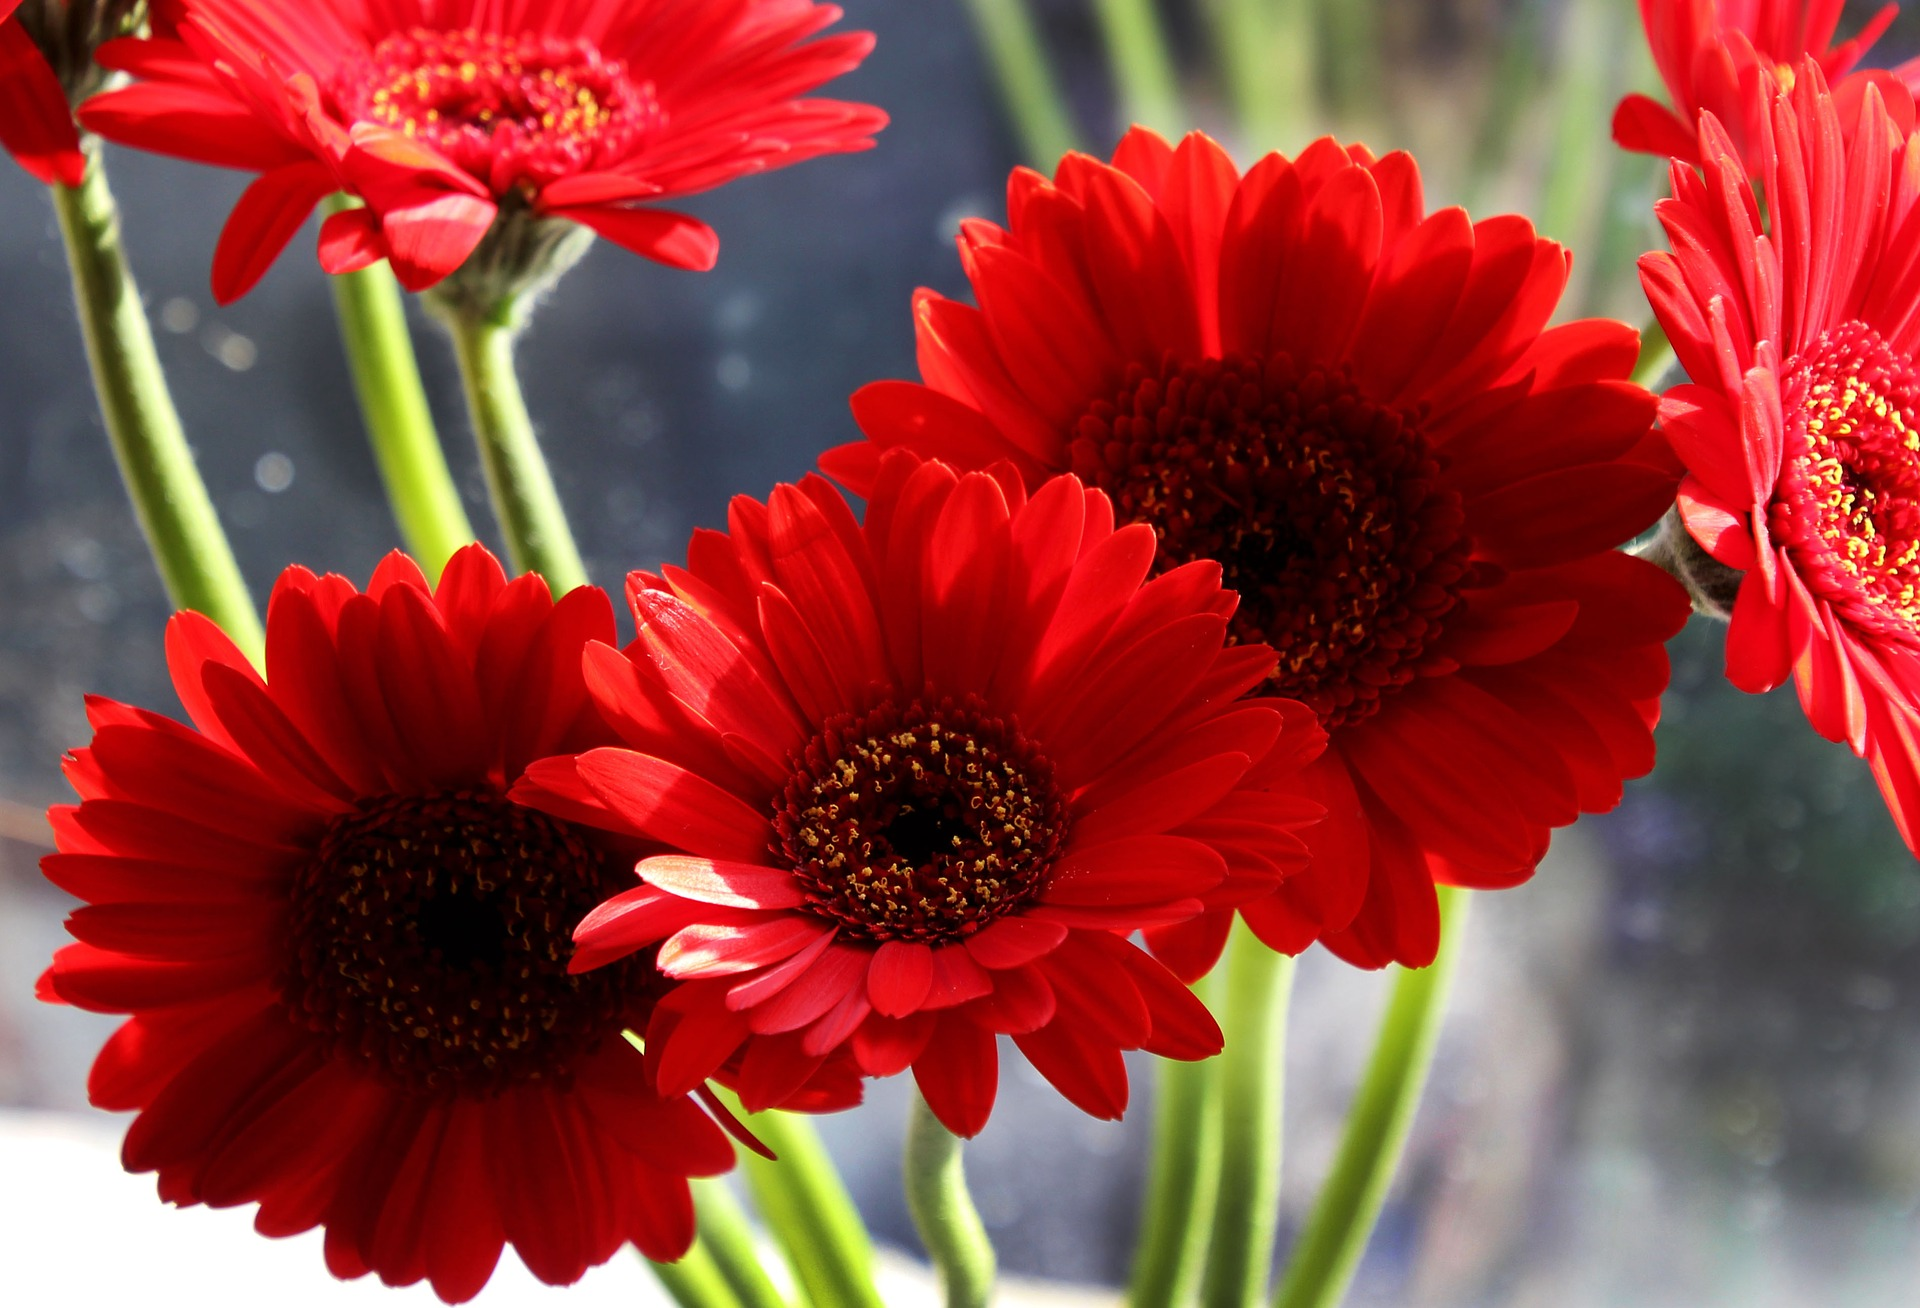 A Complete Growing and Care Guide for Gerbera Daisy